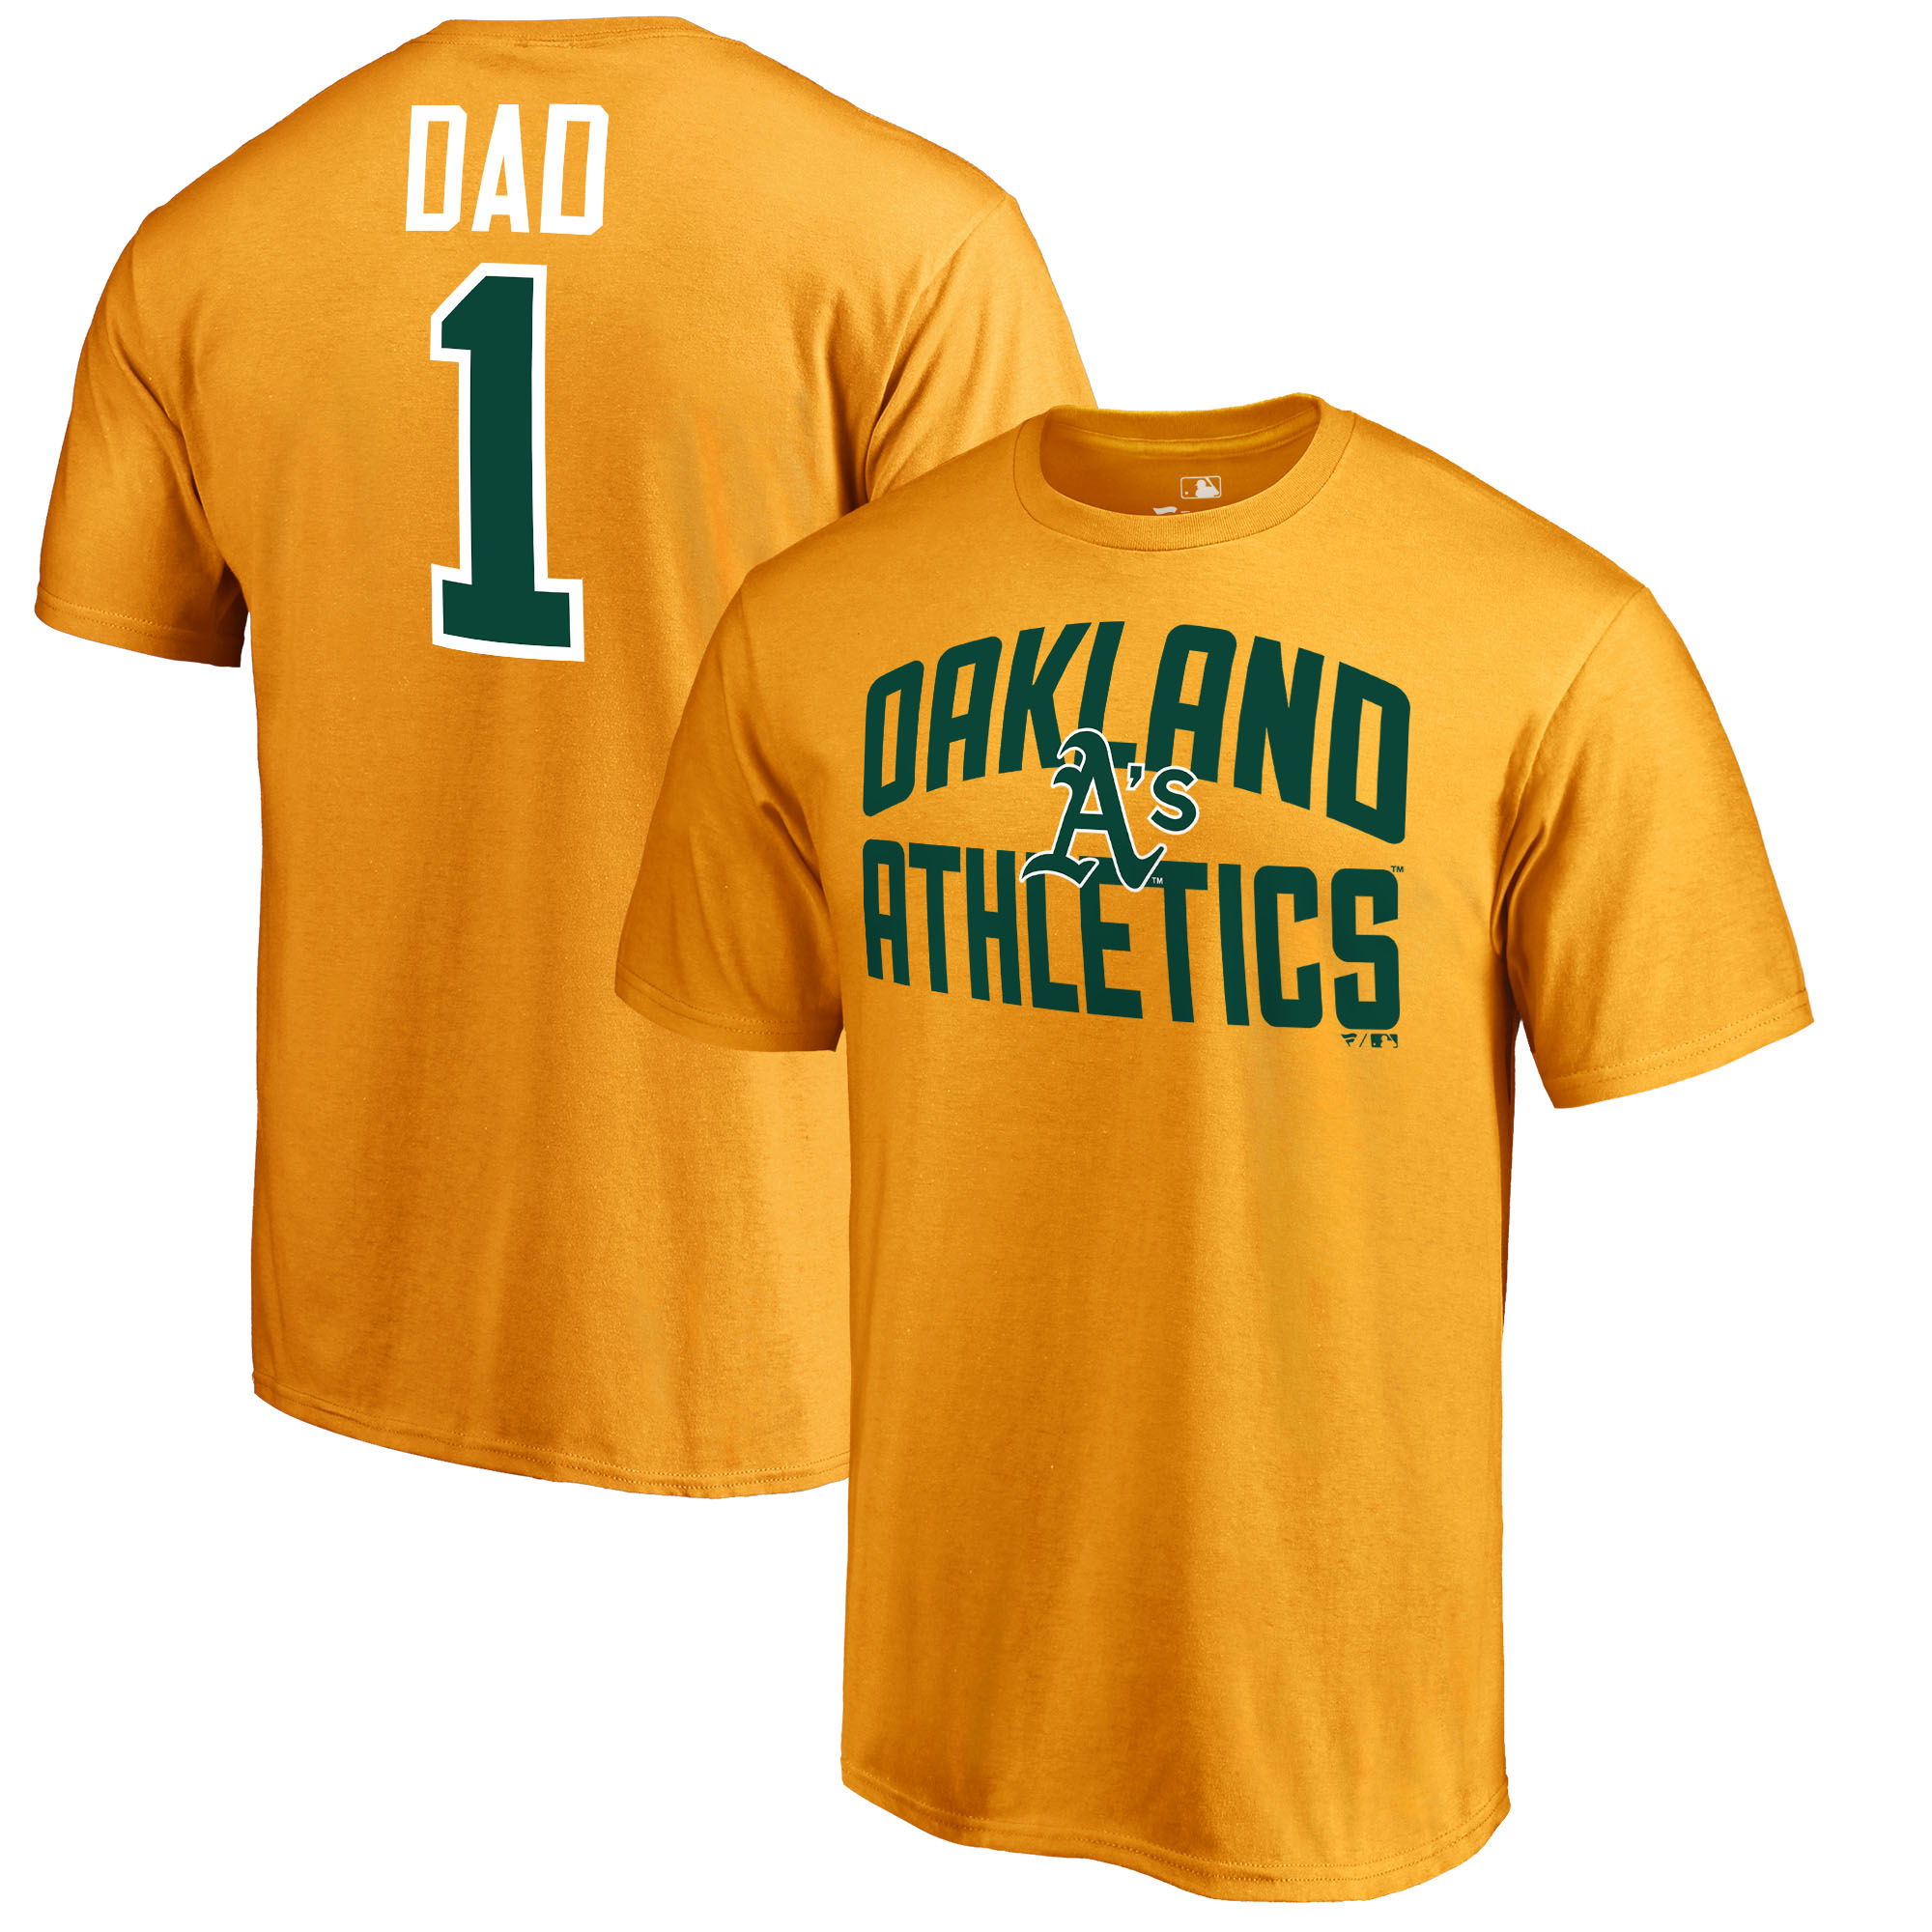 Oakland Athletics Fanatics Branded 2018 Father's Day Number 1 Dad T-Shirt - Gold